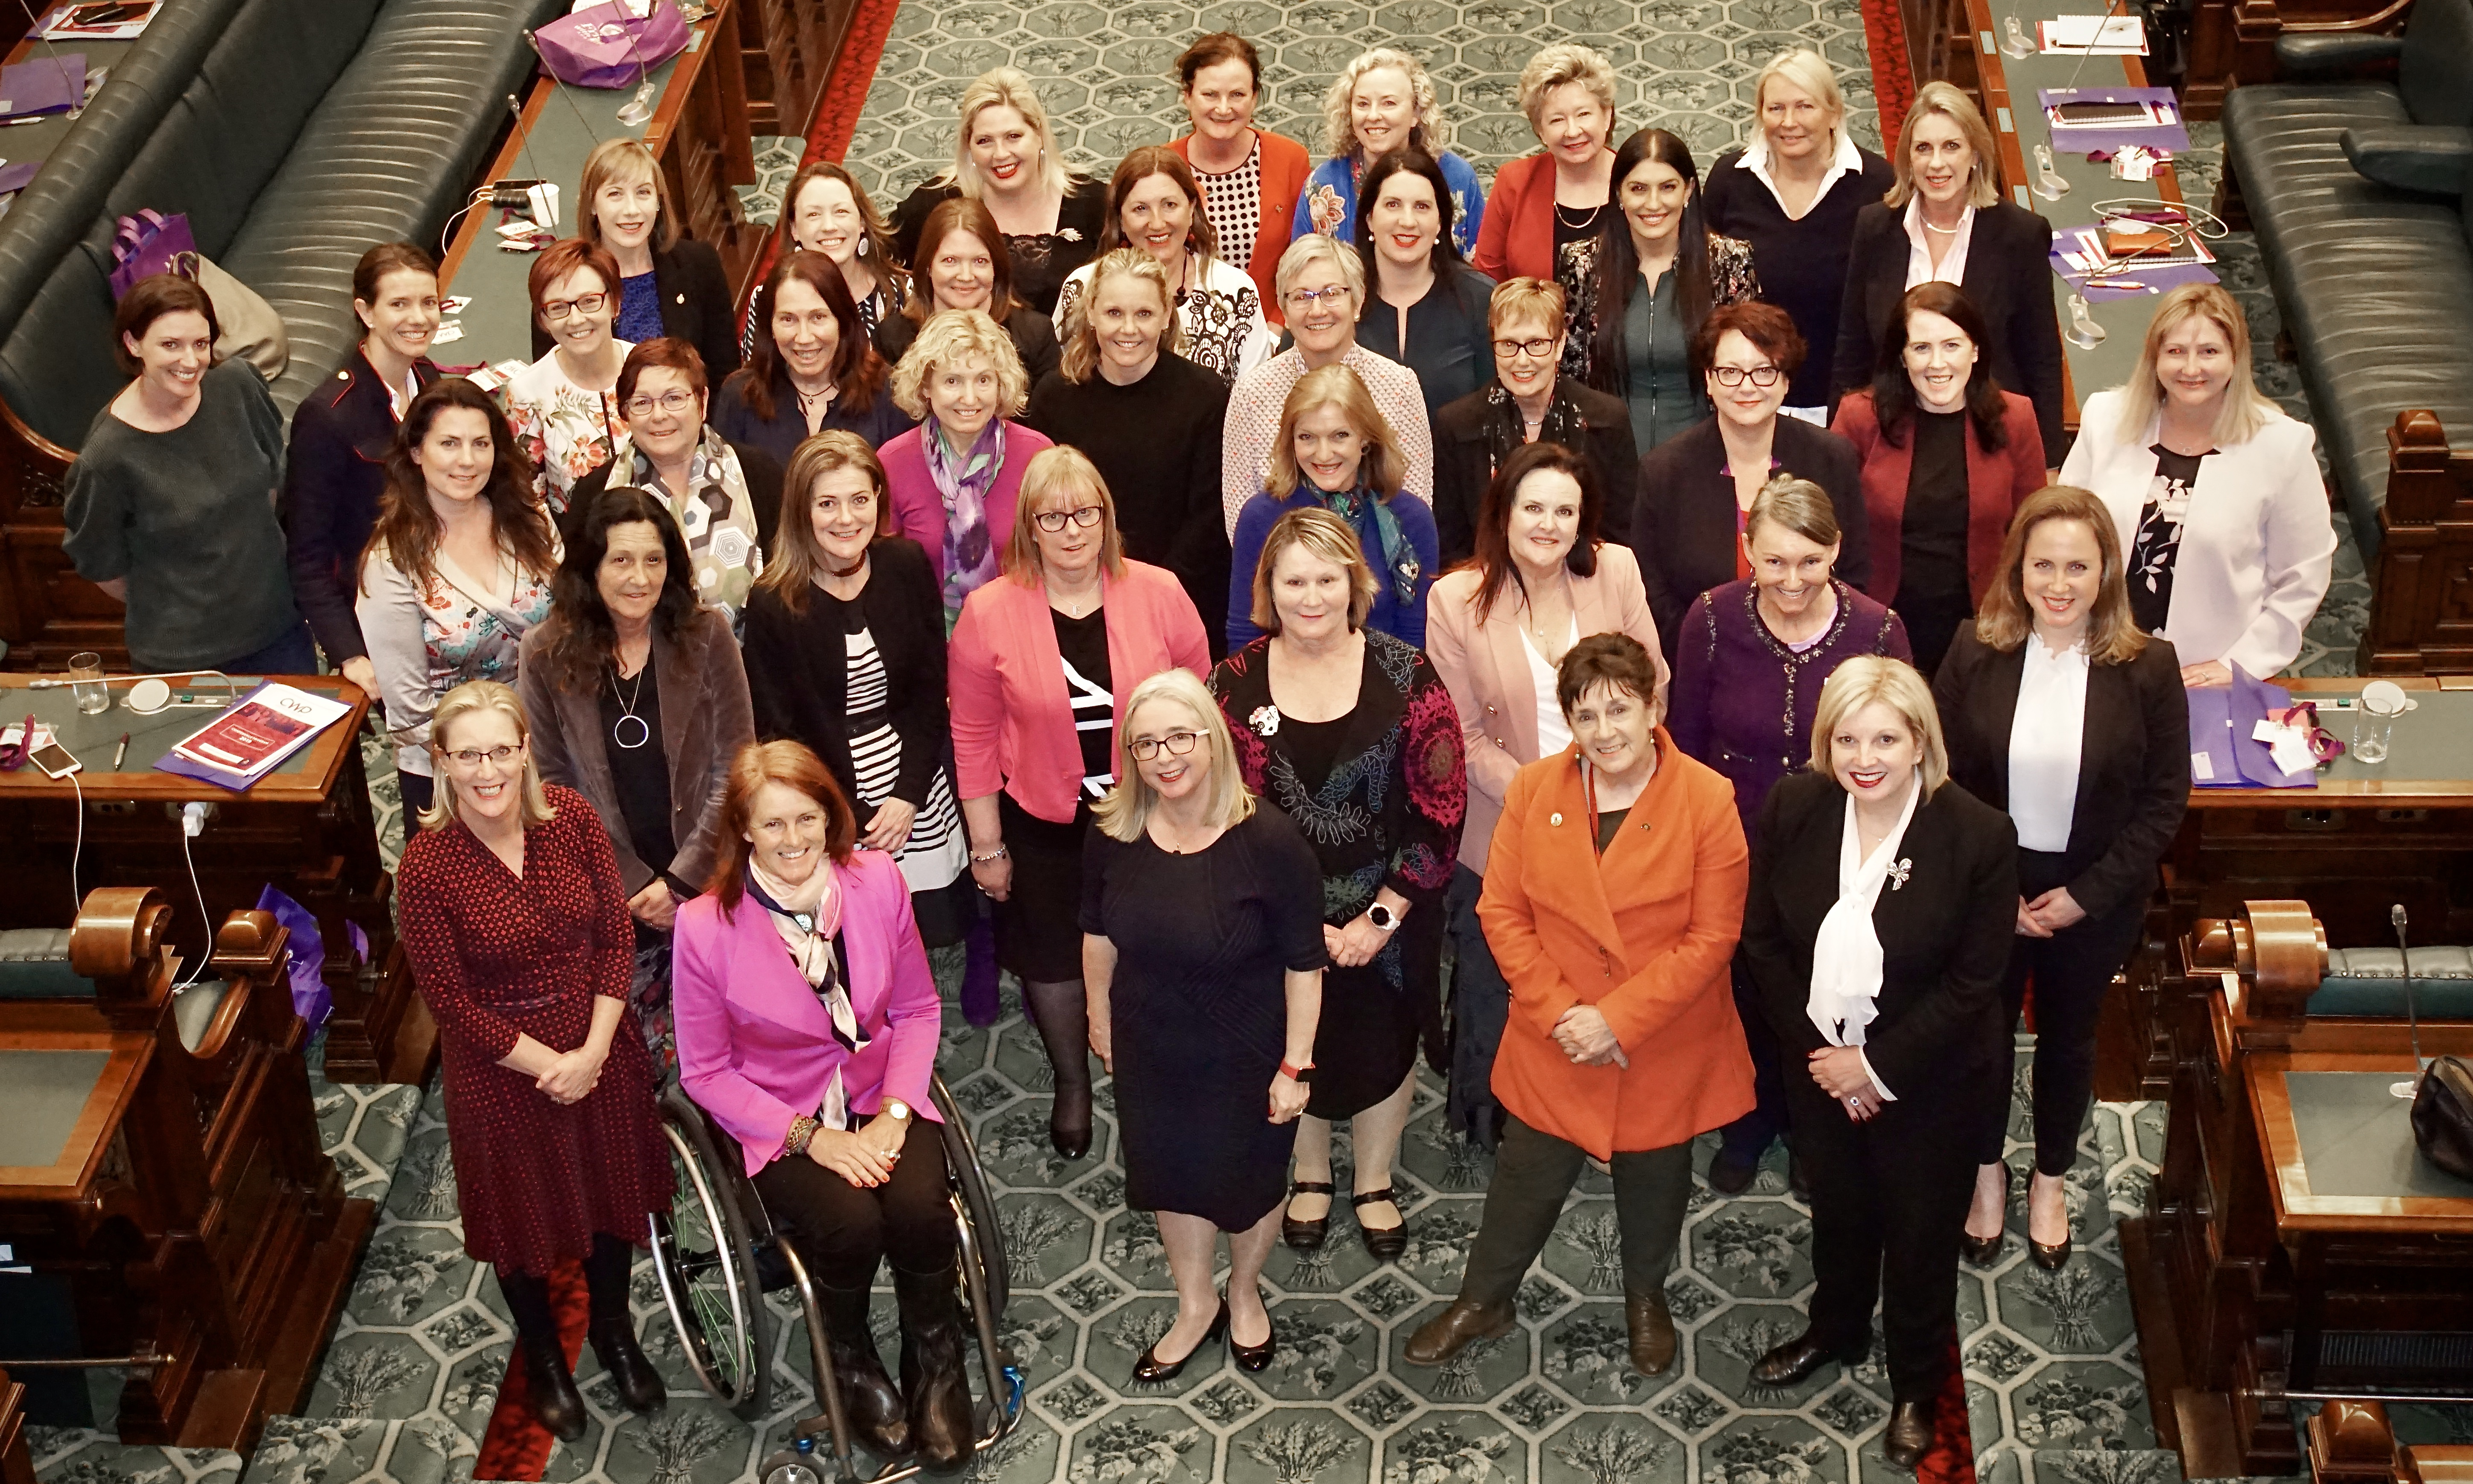 CWP Australia Region Conference